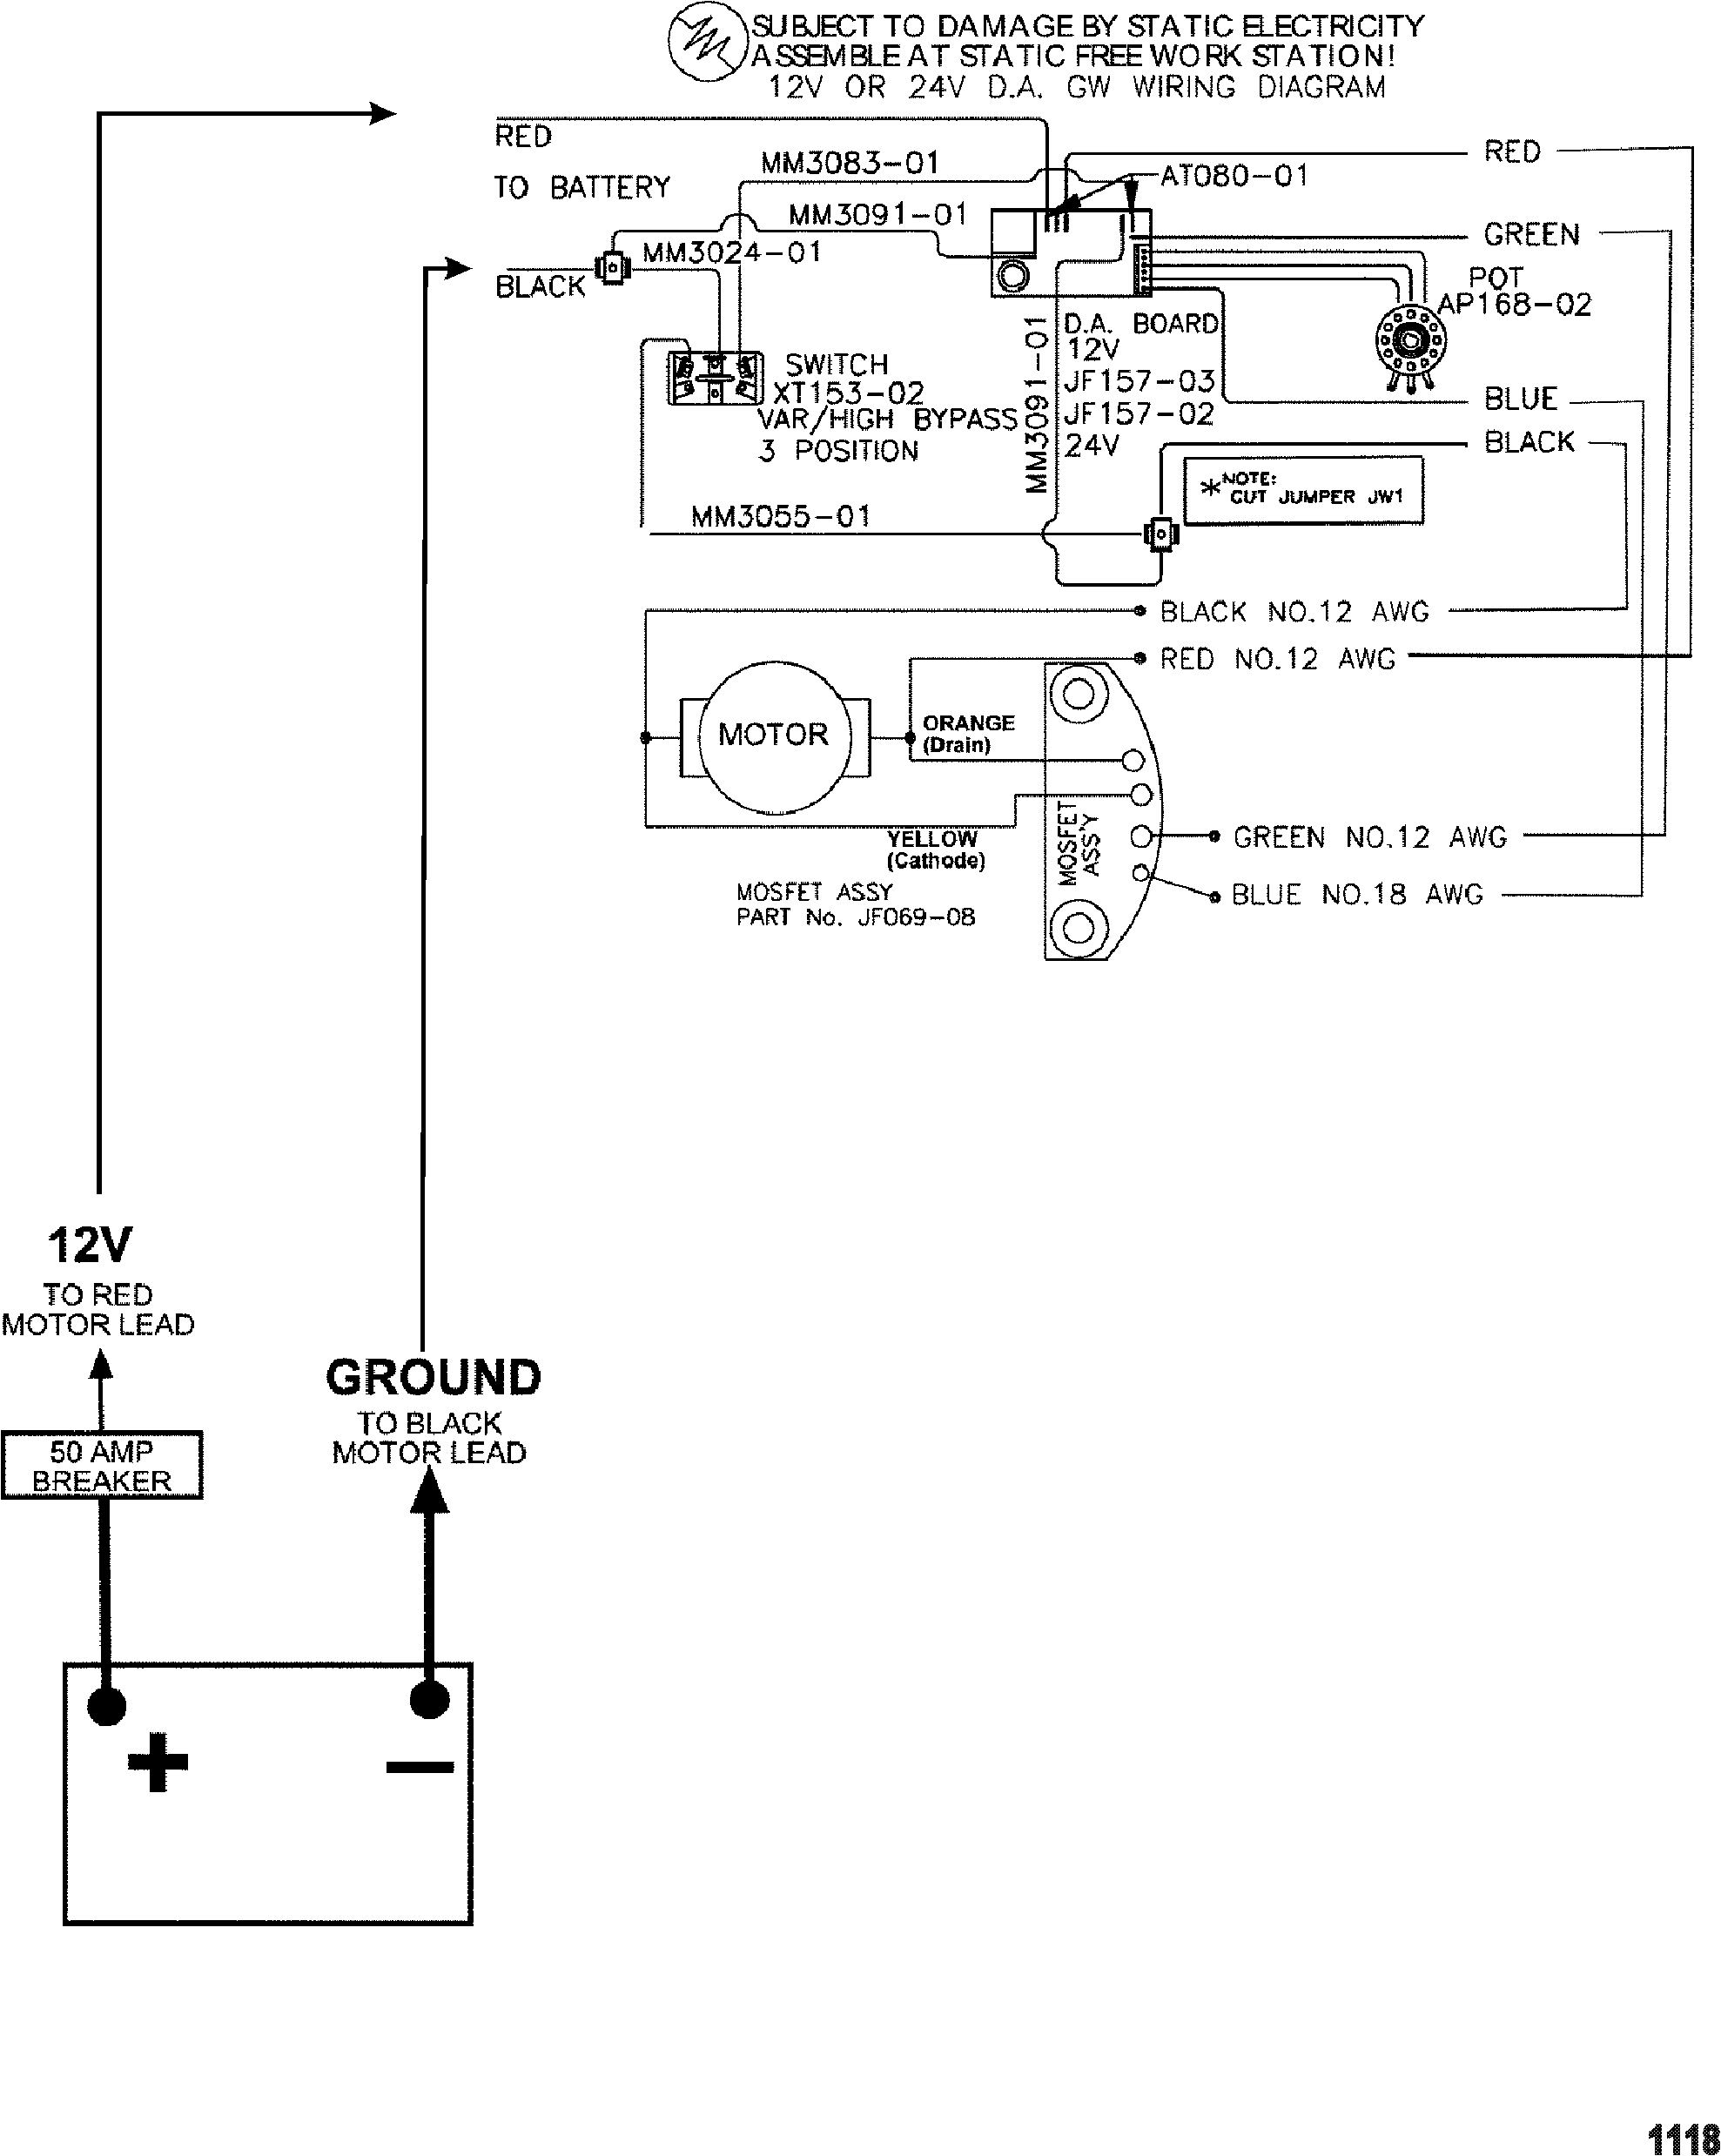 Wiring Diagram Motorguide Tracker 40